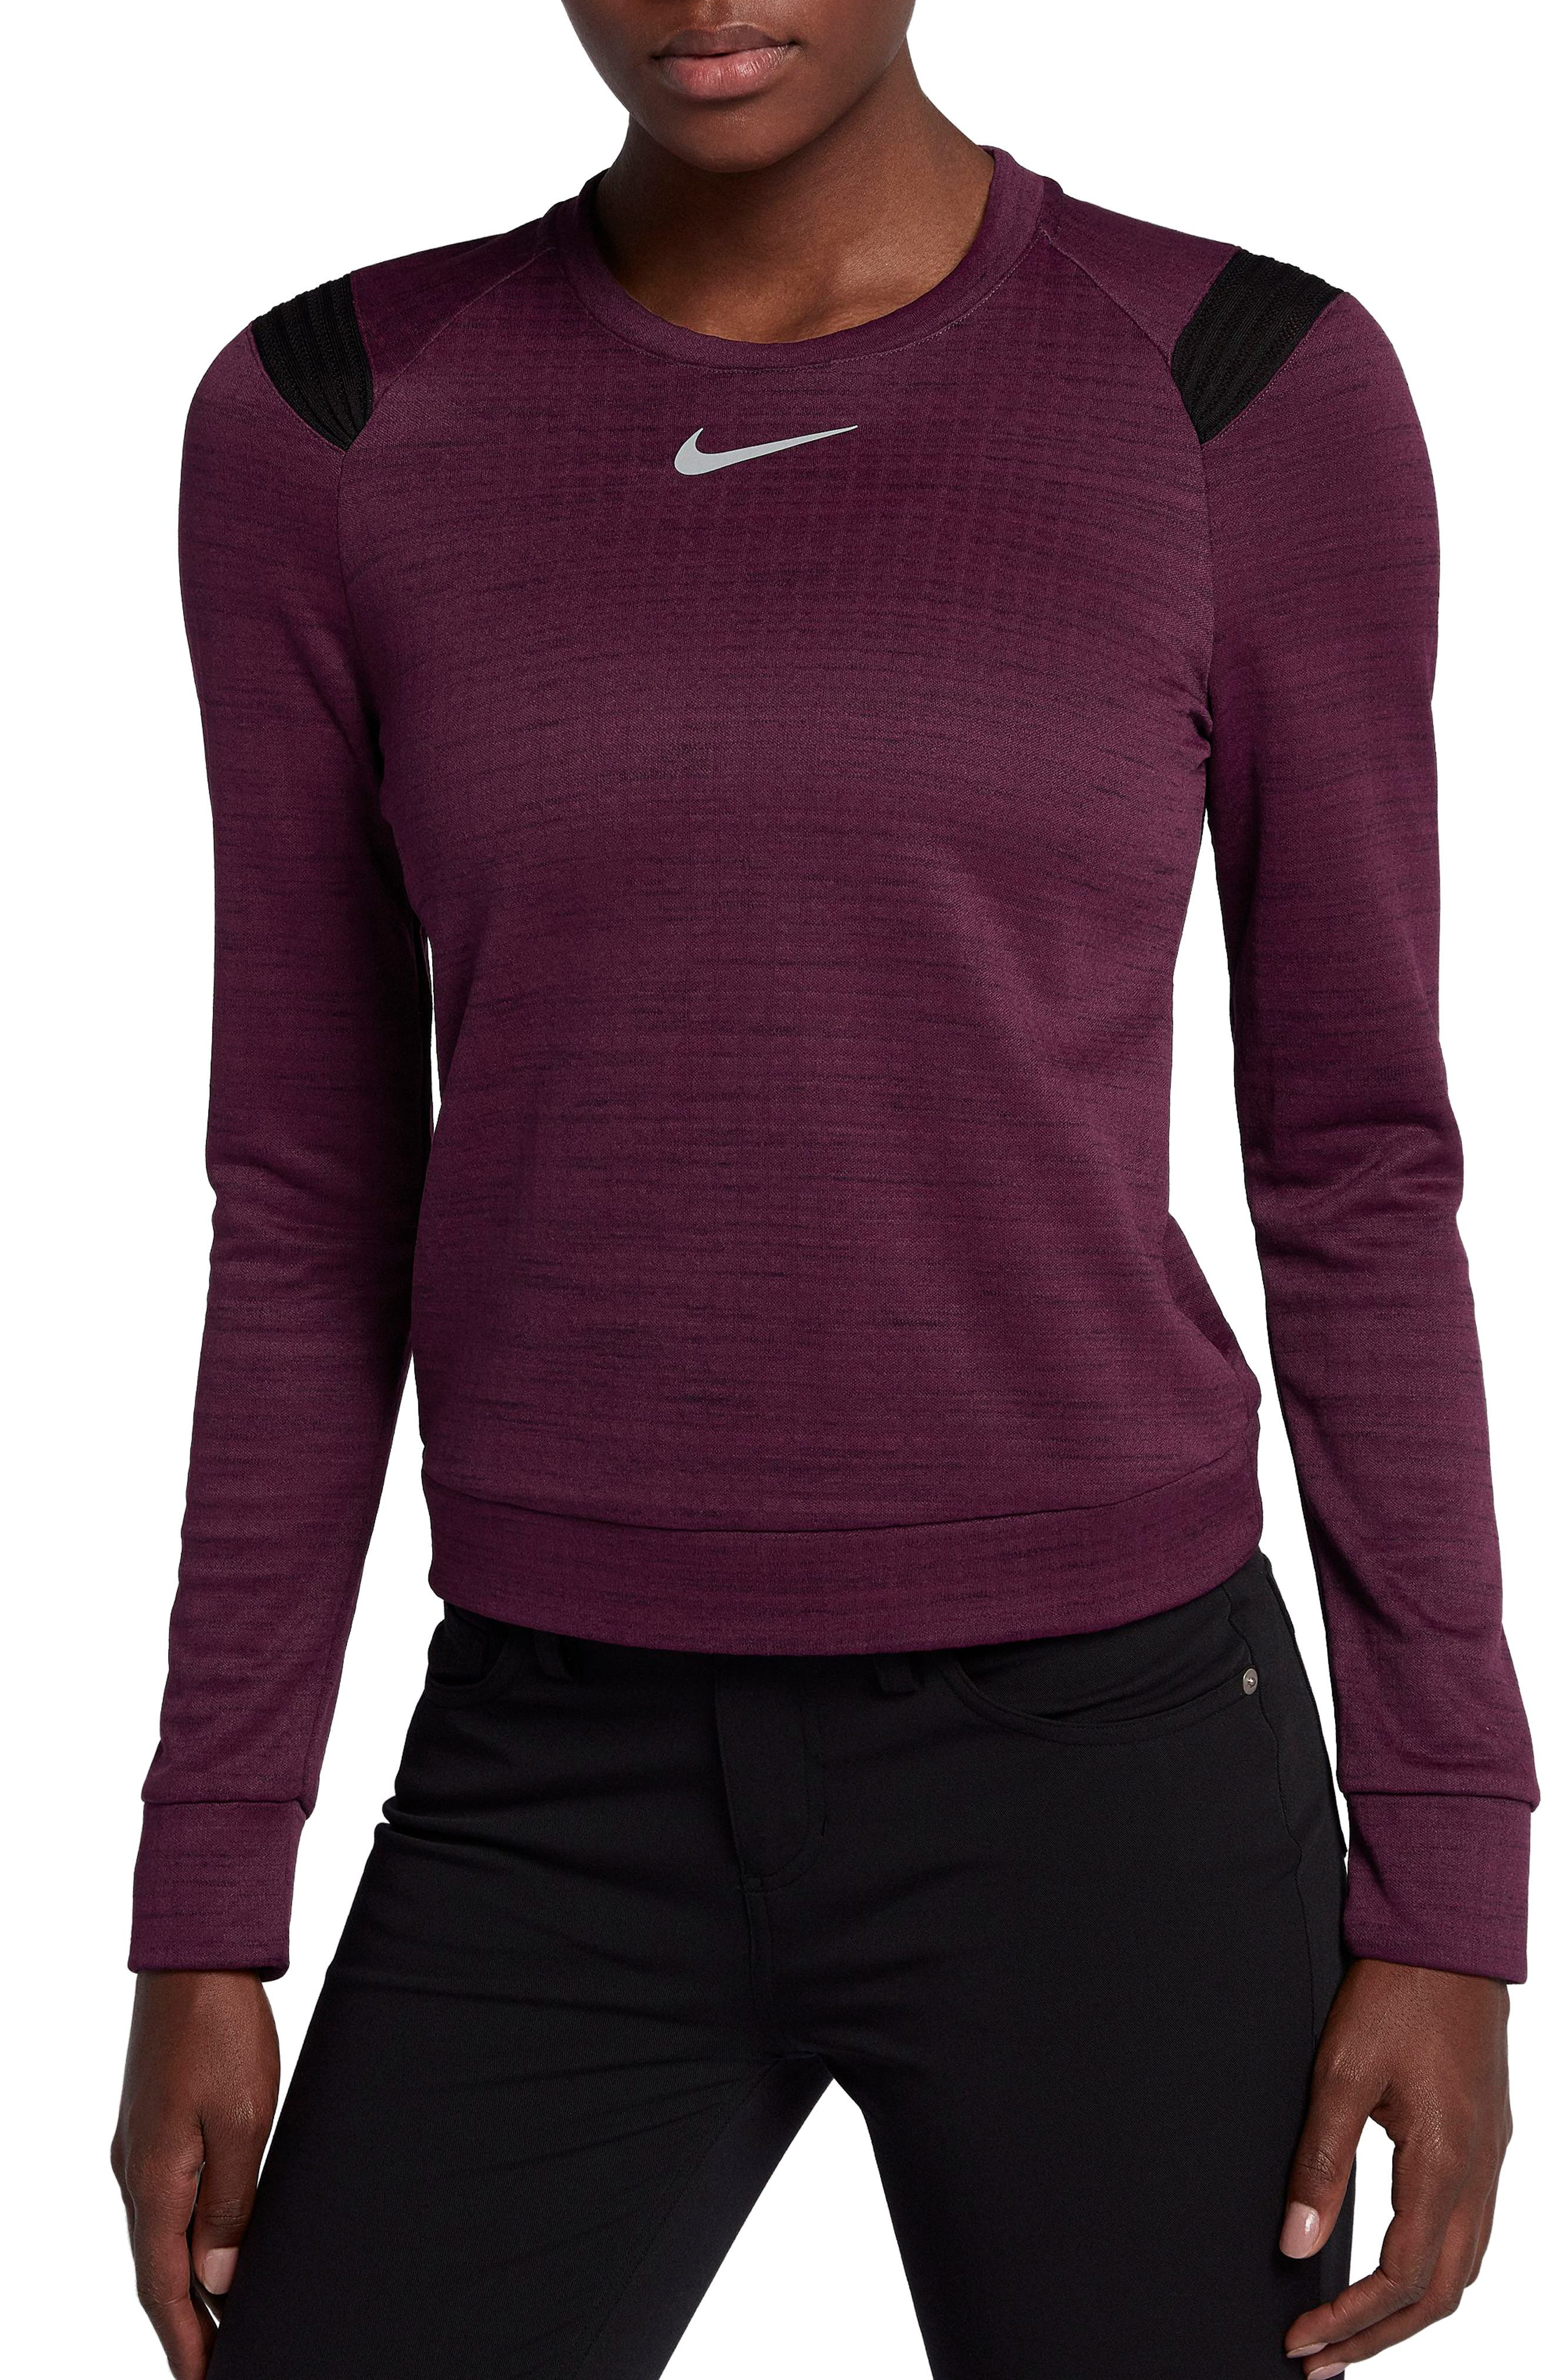 Therma Sphere Long Sleeve Top,                             Main thumbnail 1, color,                             Burgundy